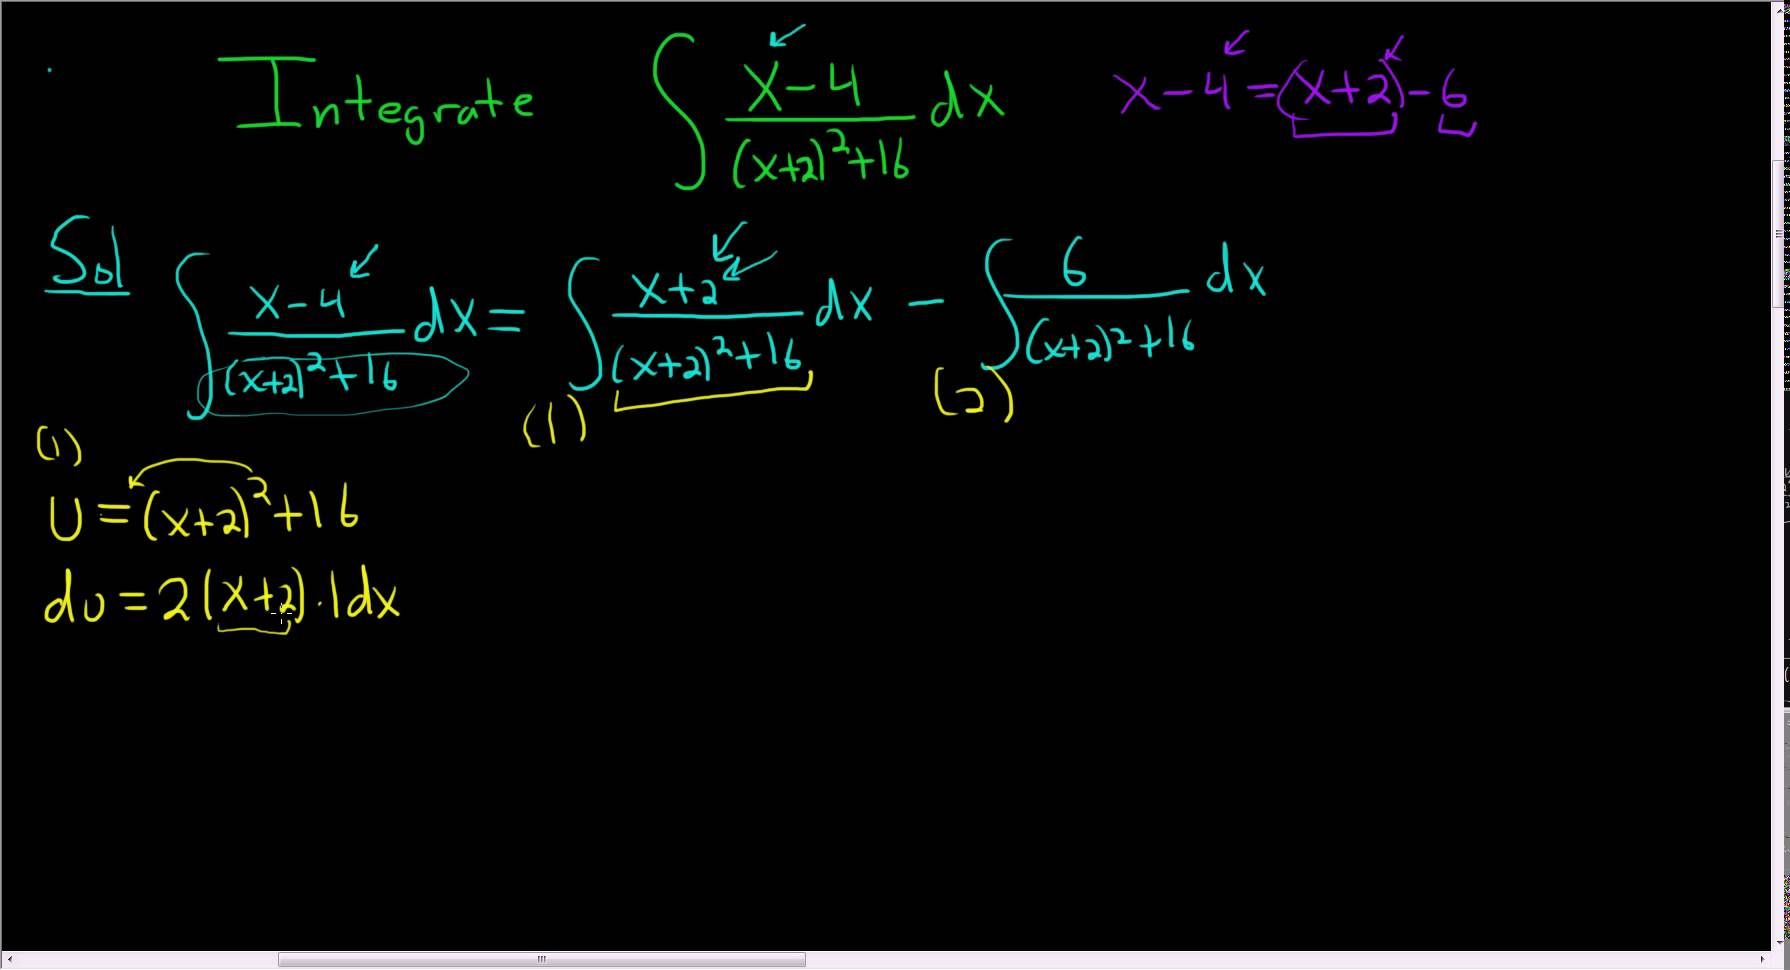 Integral of x 4x 22 16 using the inverse